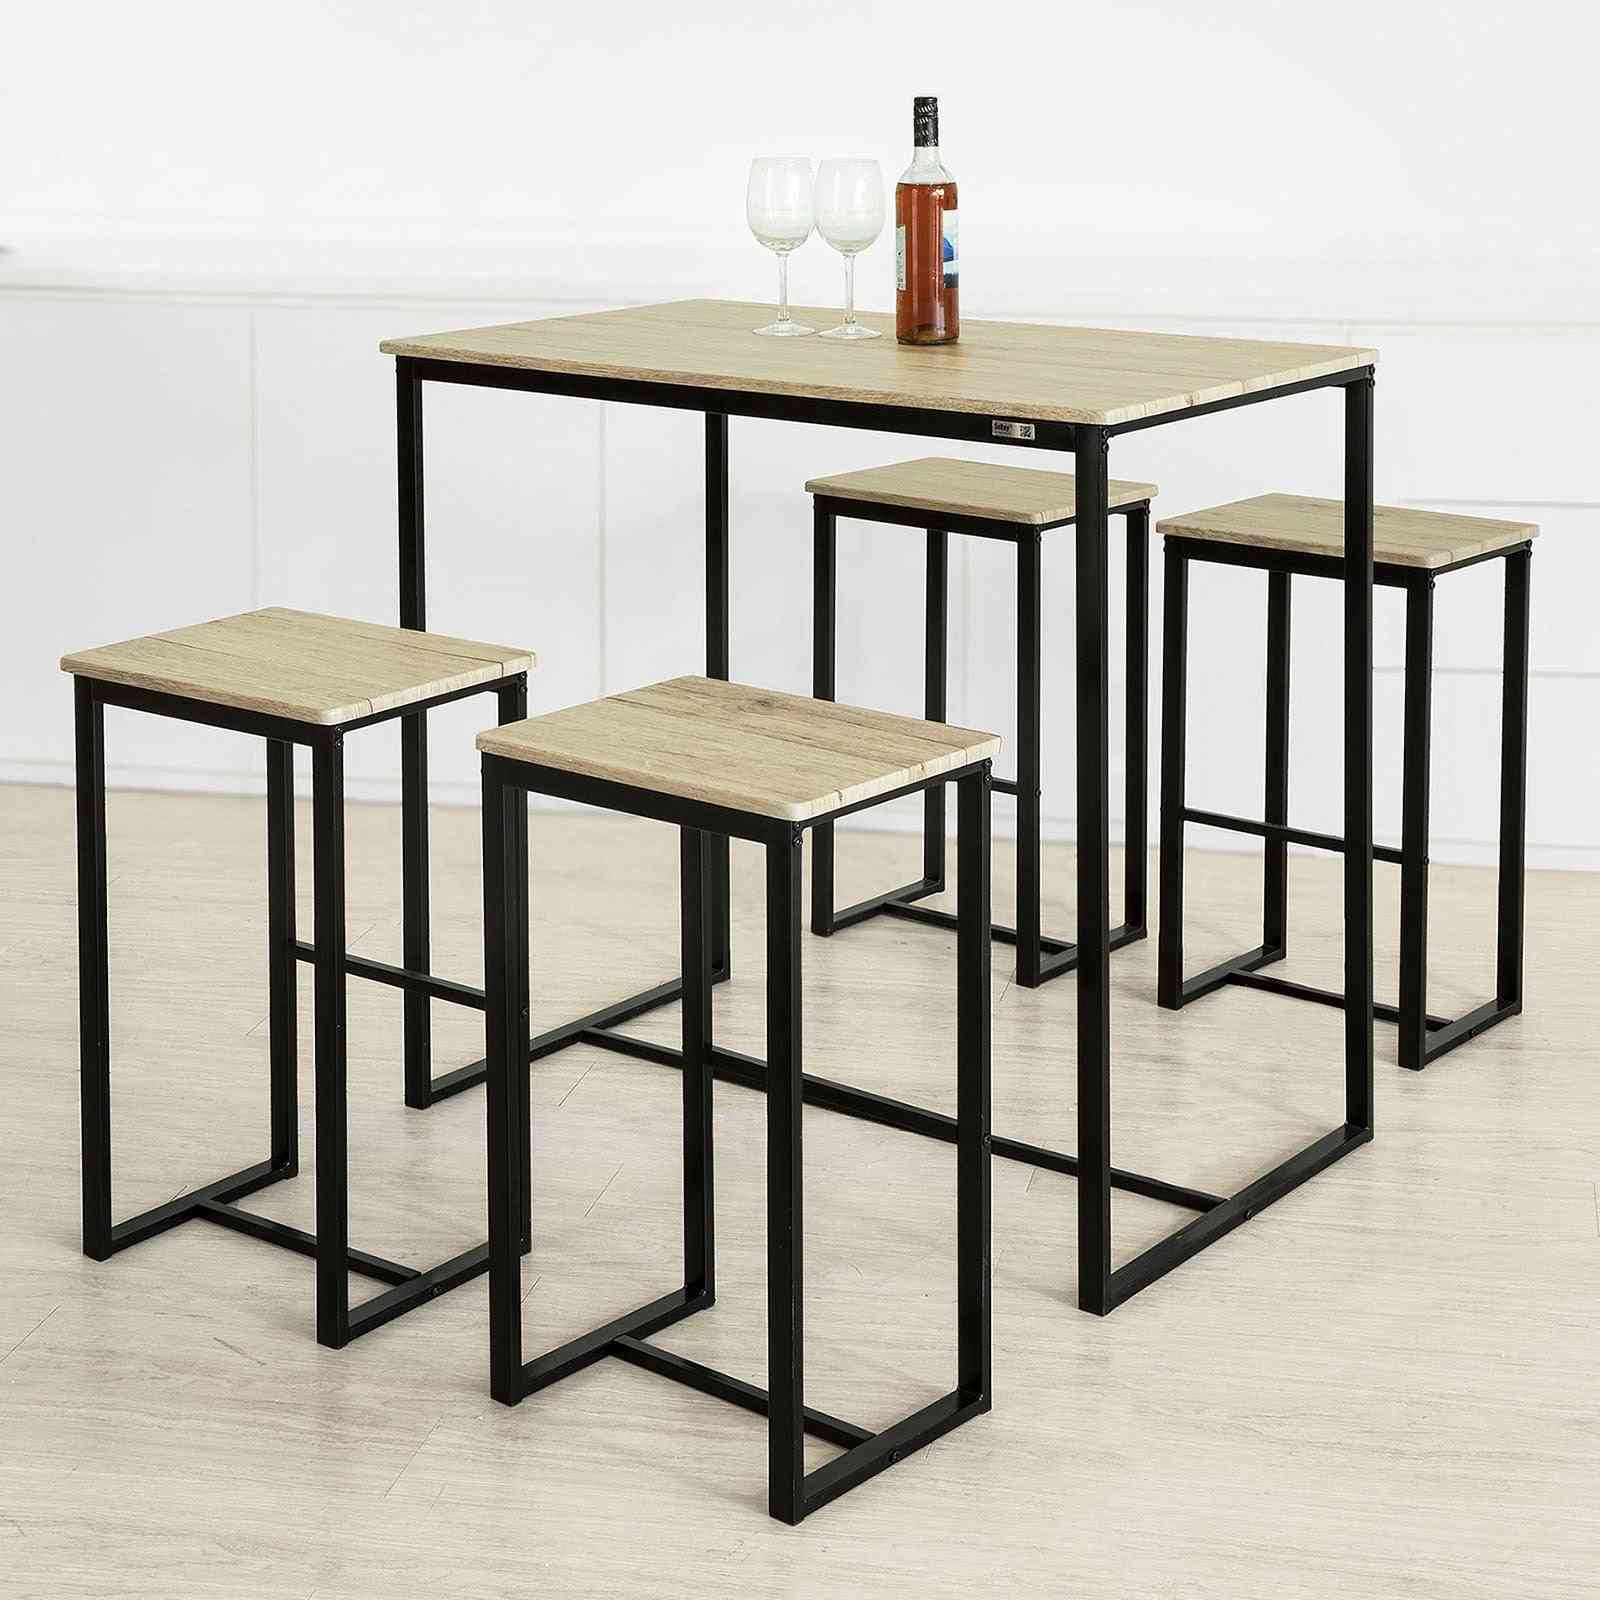 Bar Table And 4 Stools, Home Kitchen Breakfast Bar Set/furniture Dining Set